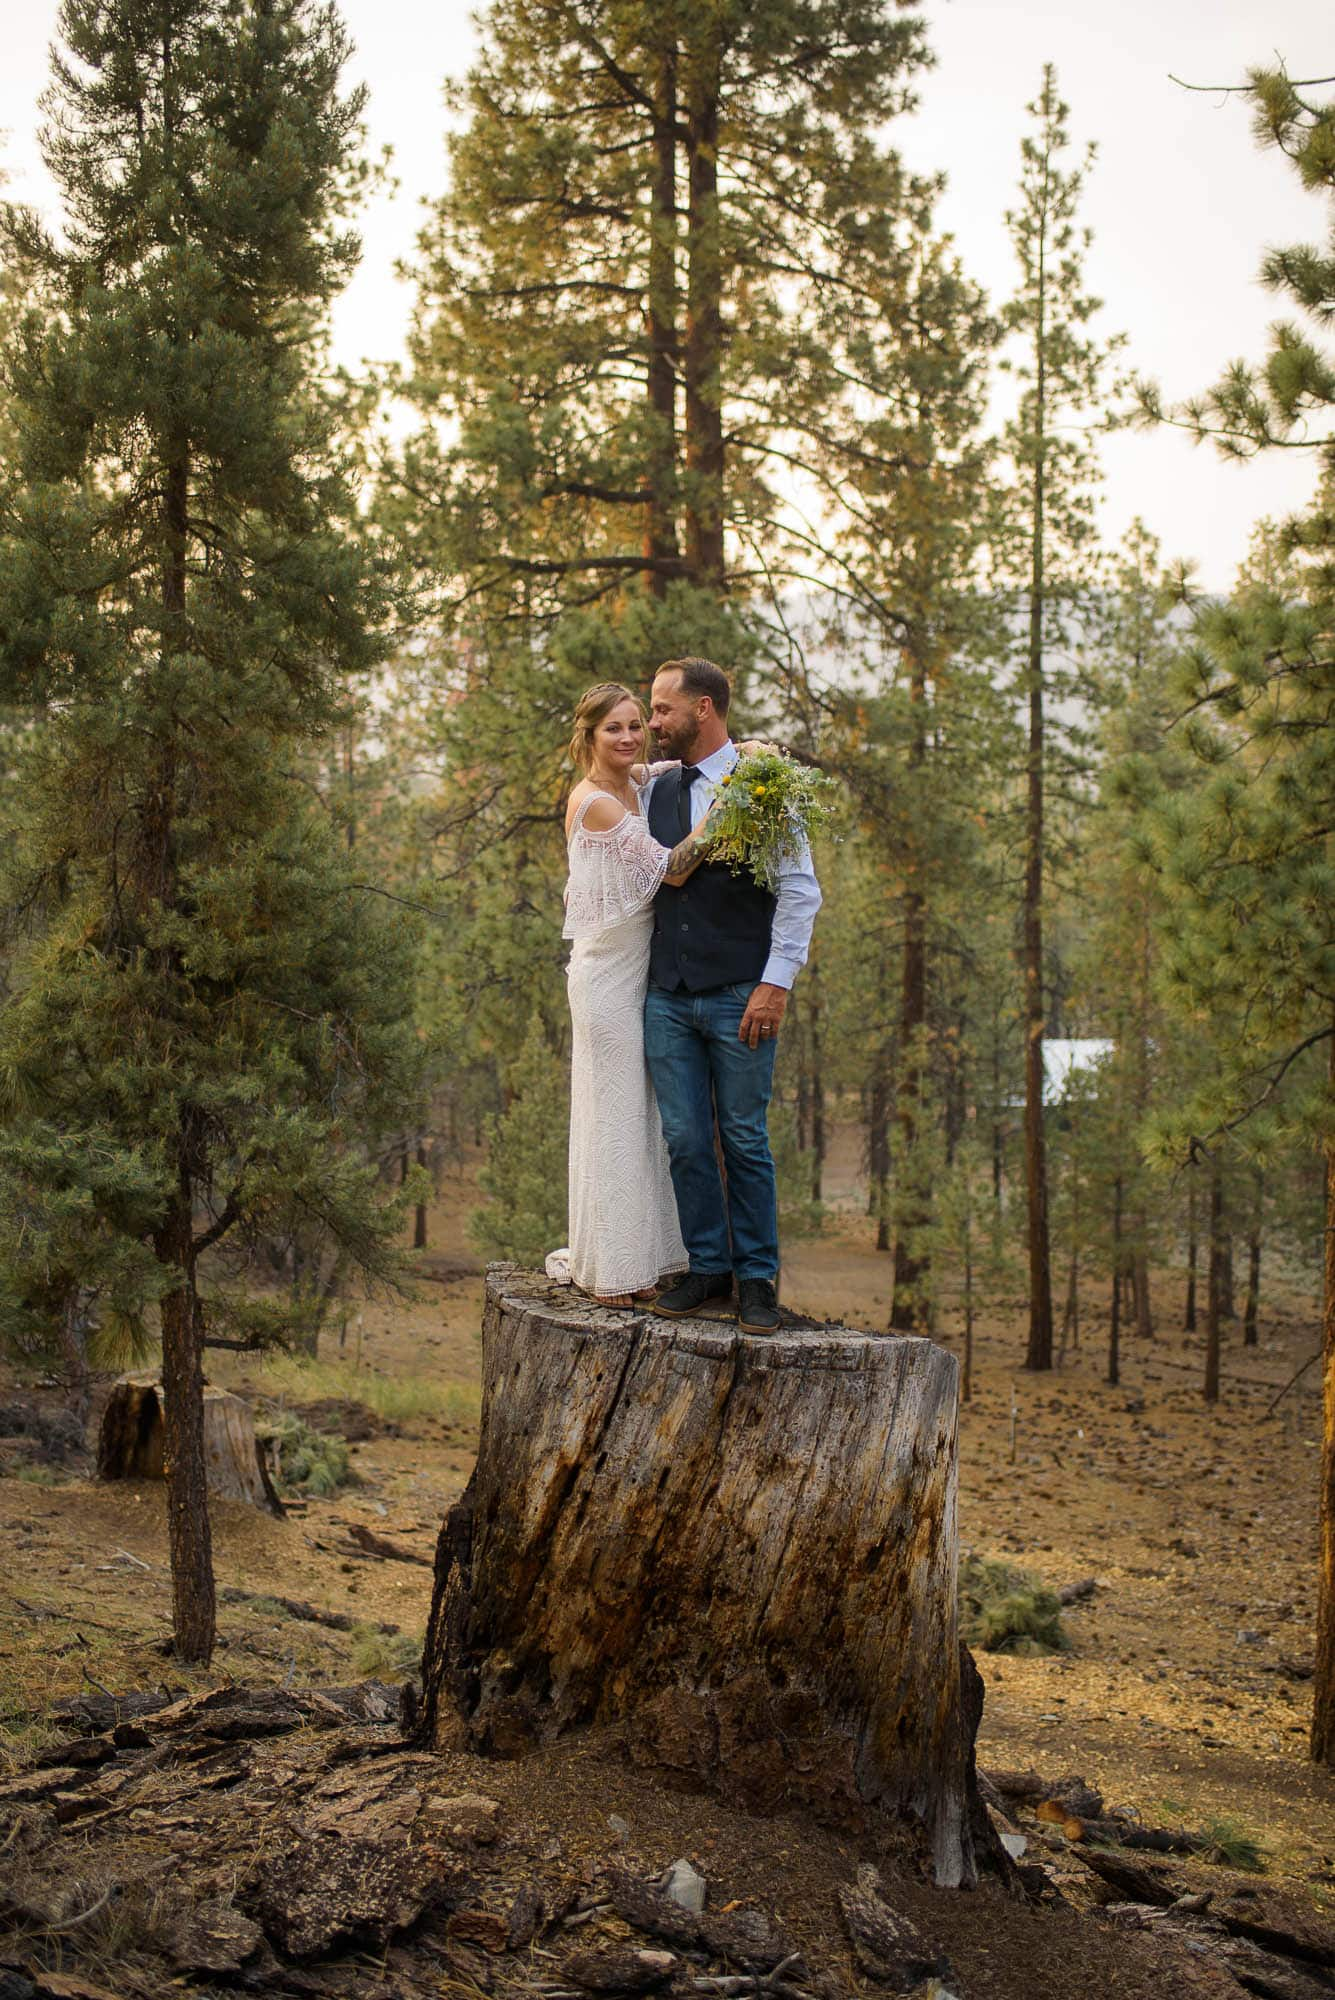 038_Alan_and_Heidi_Big_Bear_Elopement_Holly_Sean